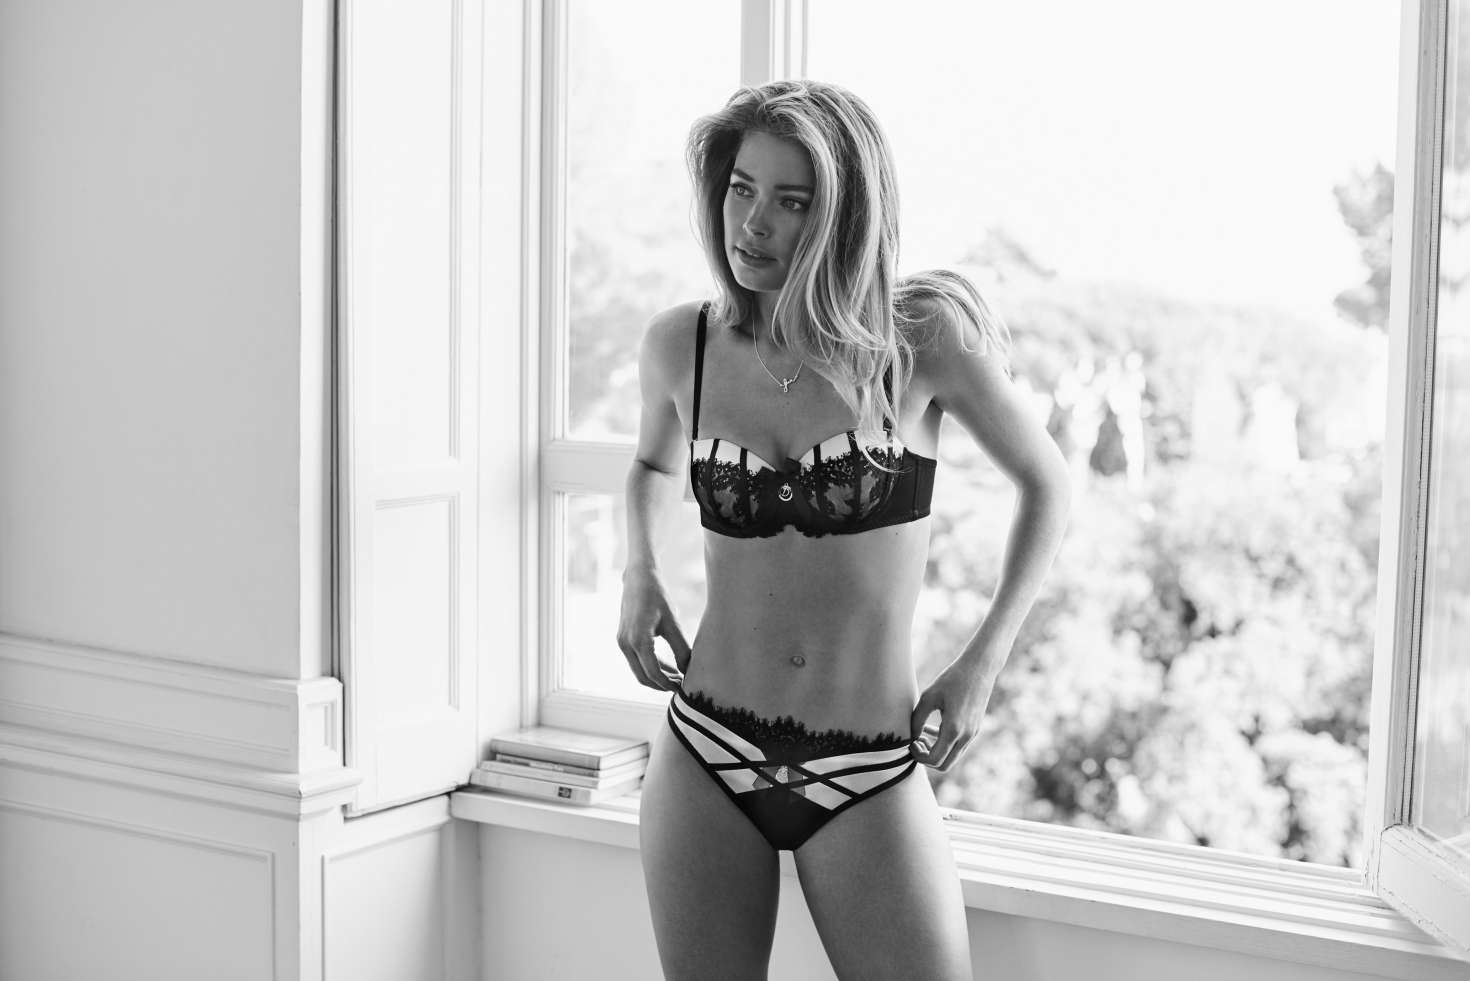 Doutzen Kroes – Hunkemoller Photoshoot 2016   Doutzen-Kroes:-Hunkemoller-Photoshoot-2016--18